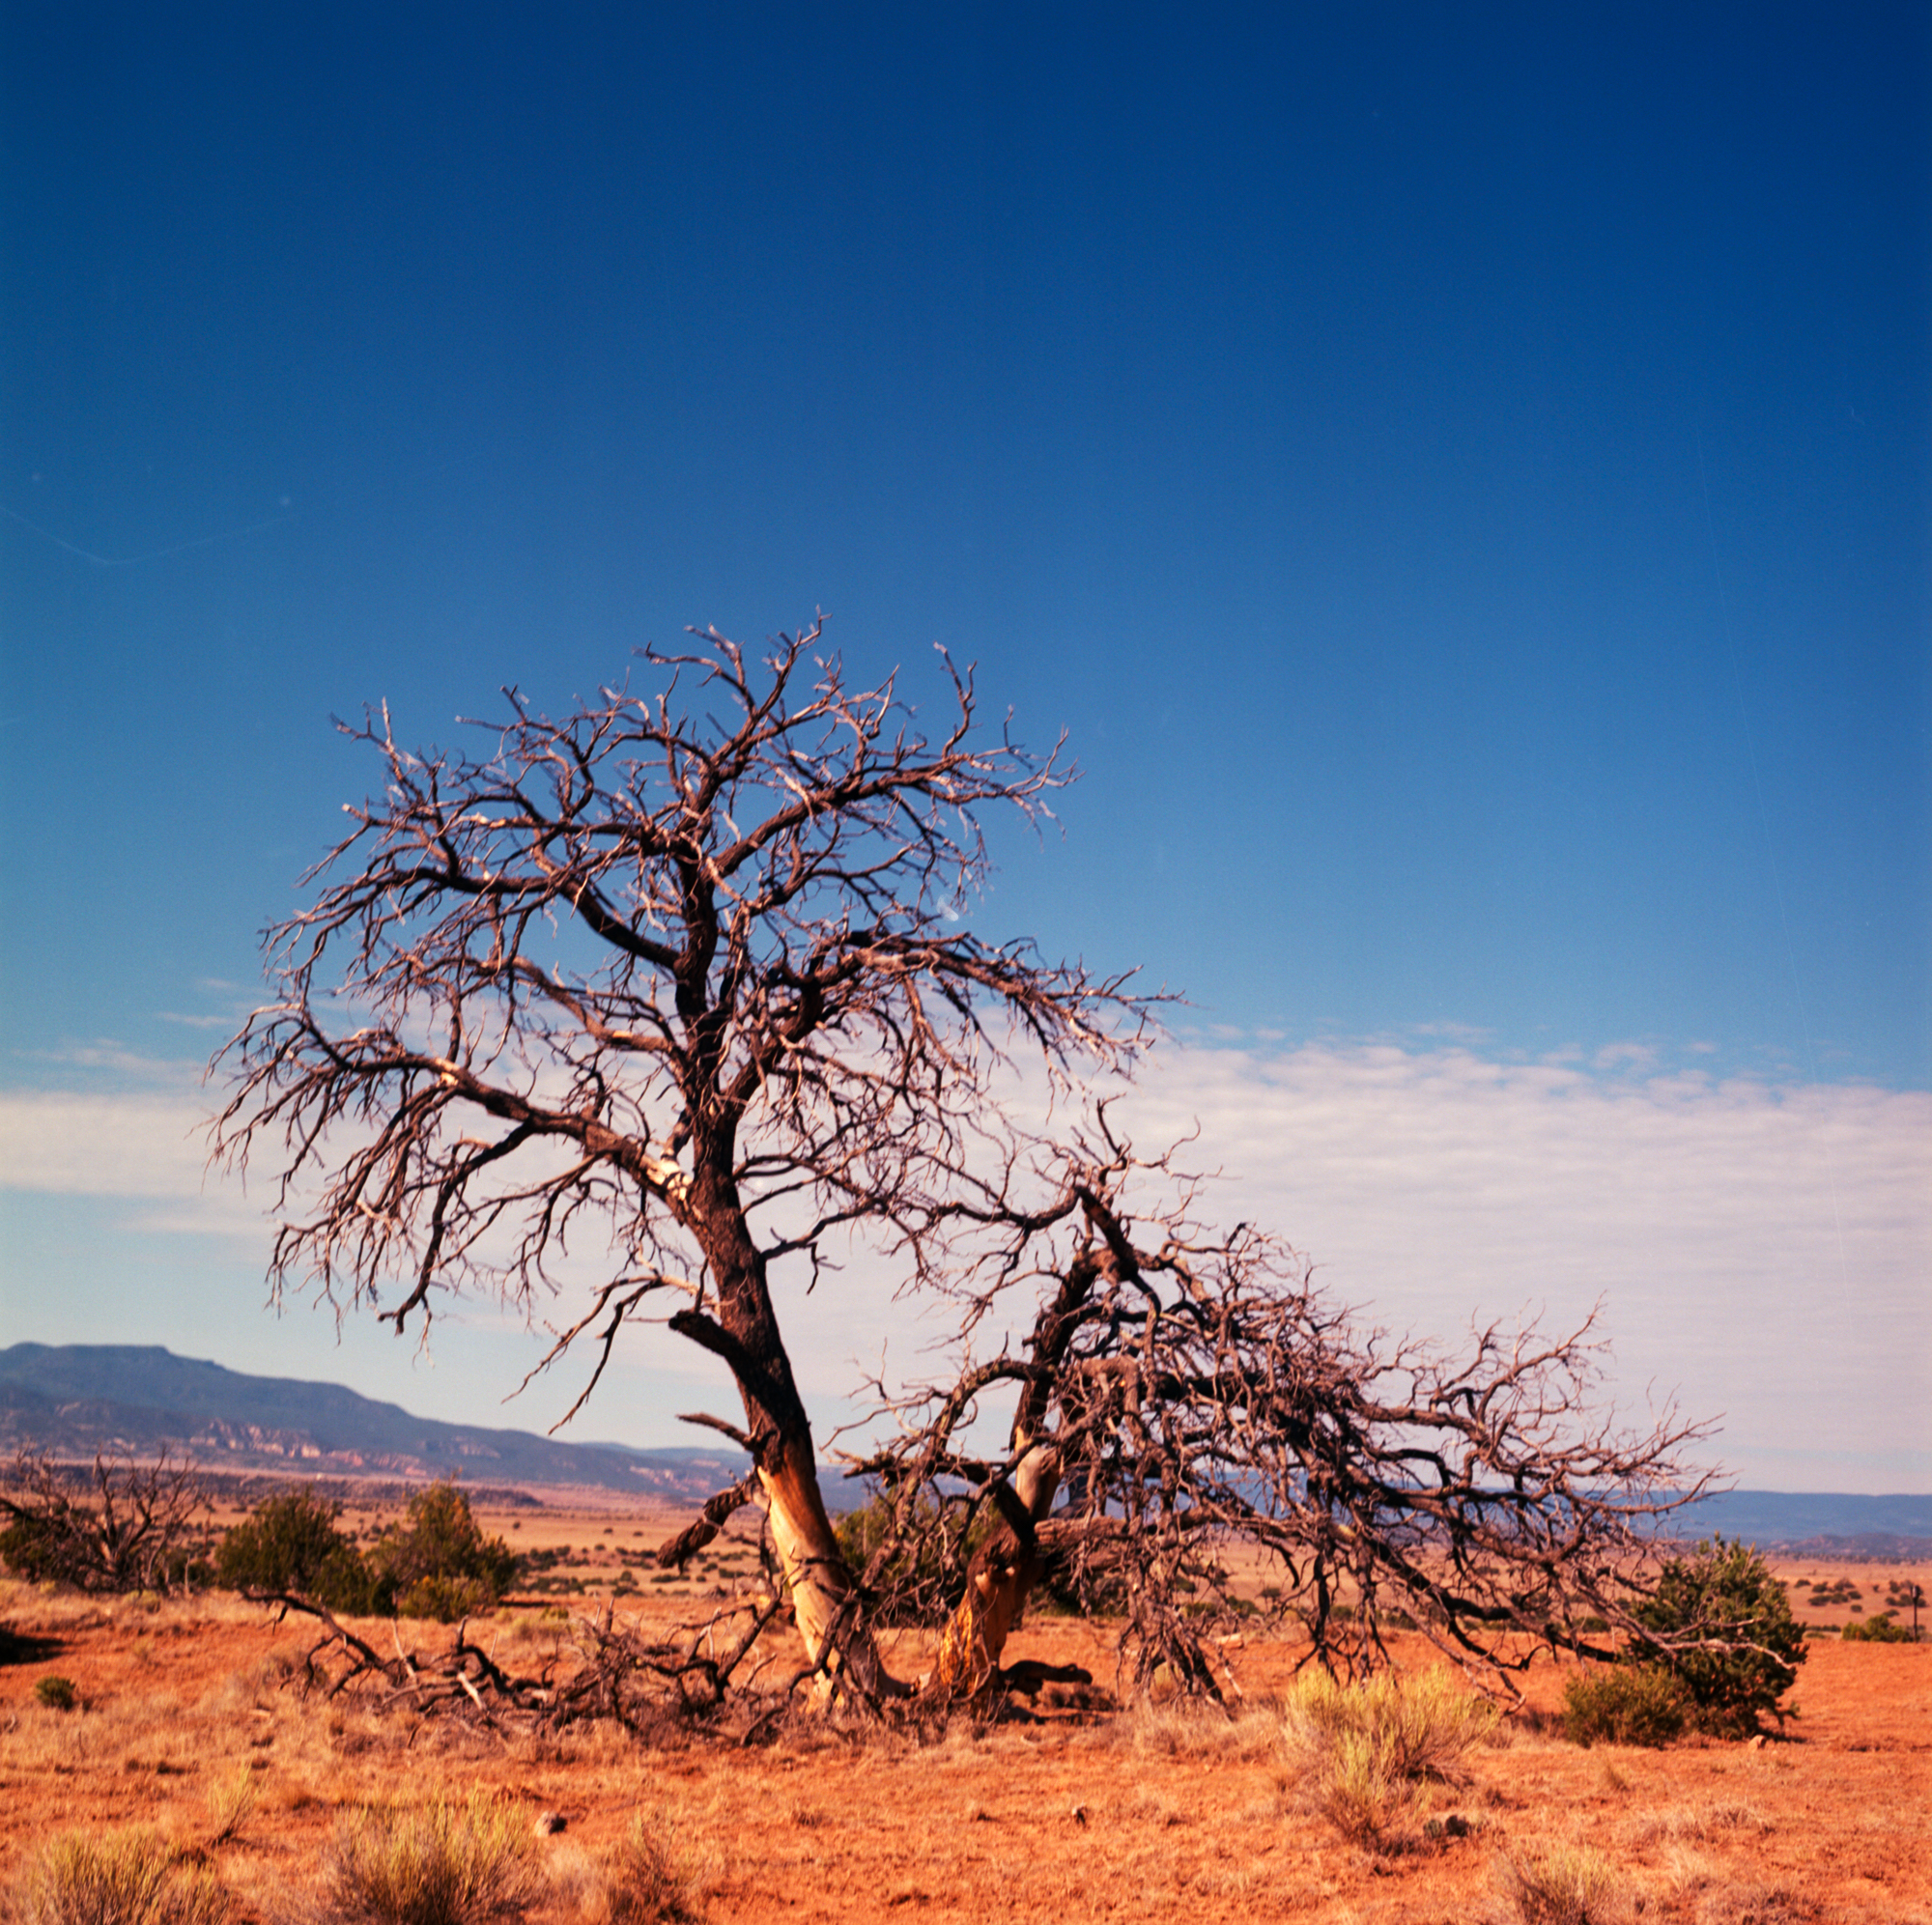 Ghost Ranch ektar 120 2018 (9 of 12).jpg